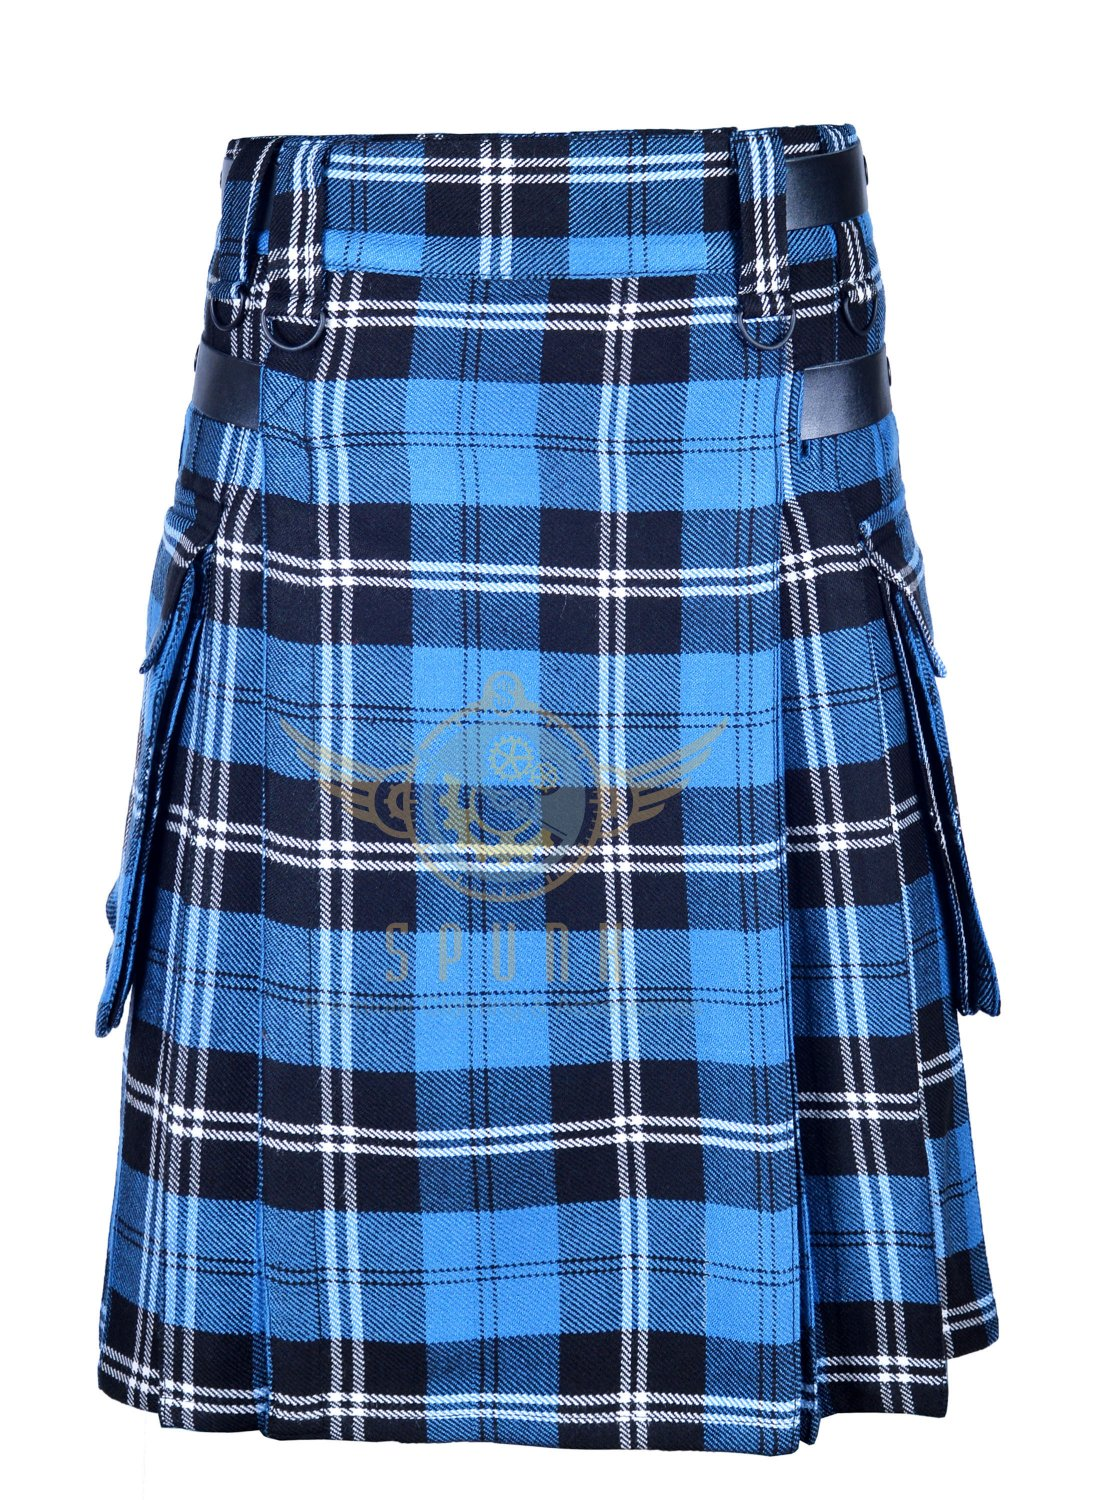 Scottish Men's Modern utility kilt - Two Cargo Pockets Kilt Ramsey blue Hunting Tartan  Size 54